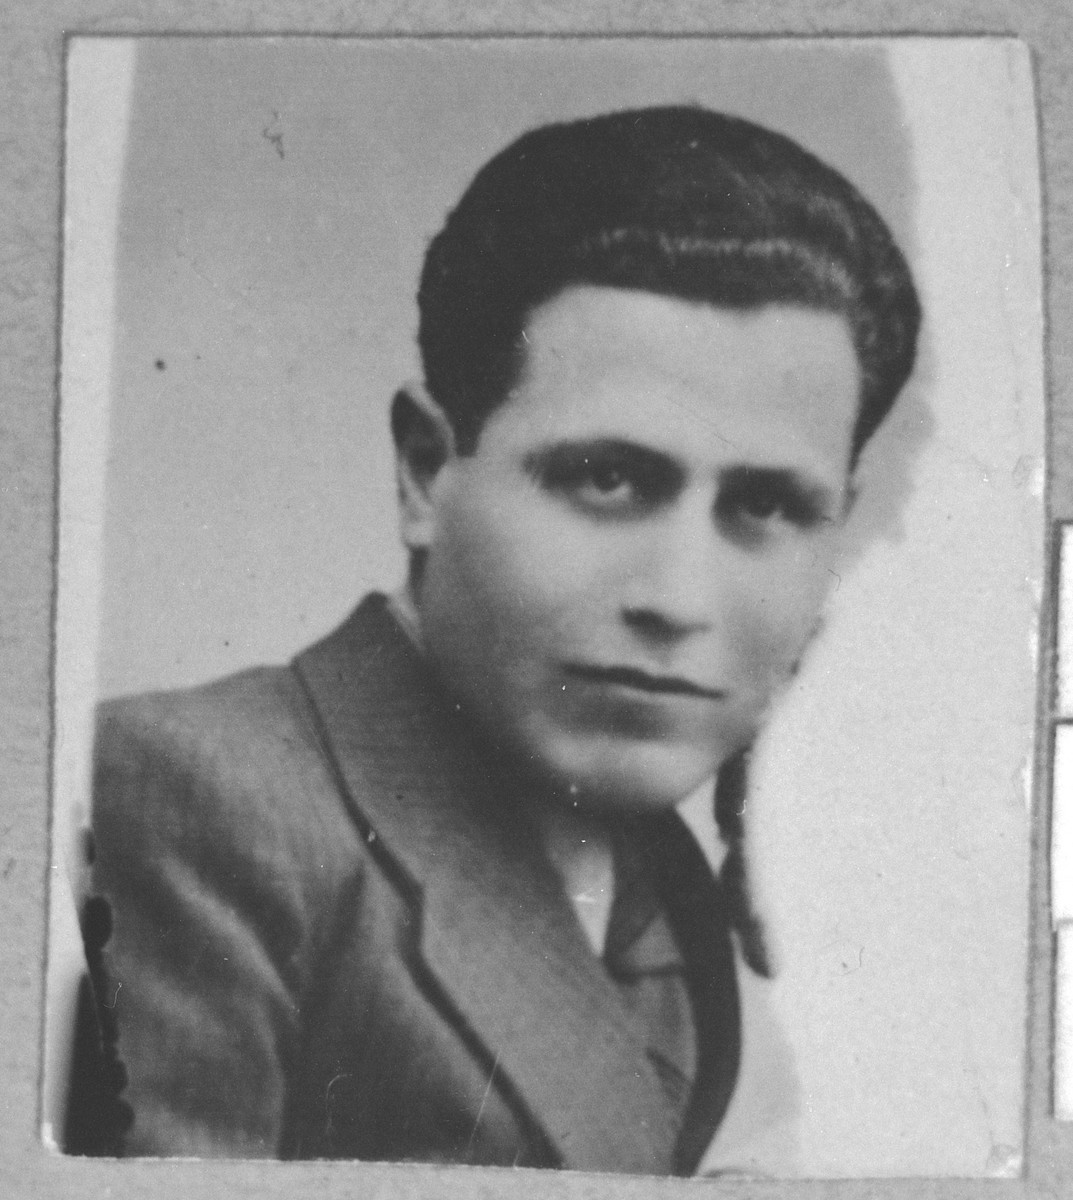 Portrait of Isak Pardo, son of Santo Pardo.  He was a second-hand dealer.  He lived at Karagoryeva 63 in Bitola.